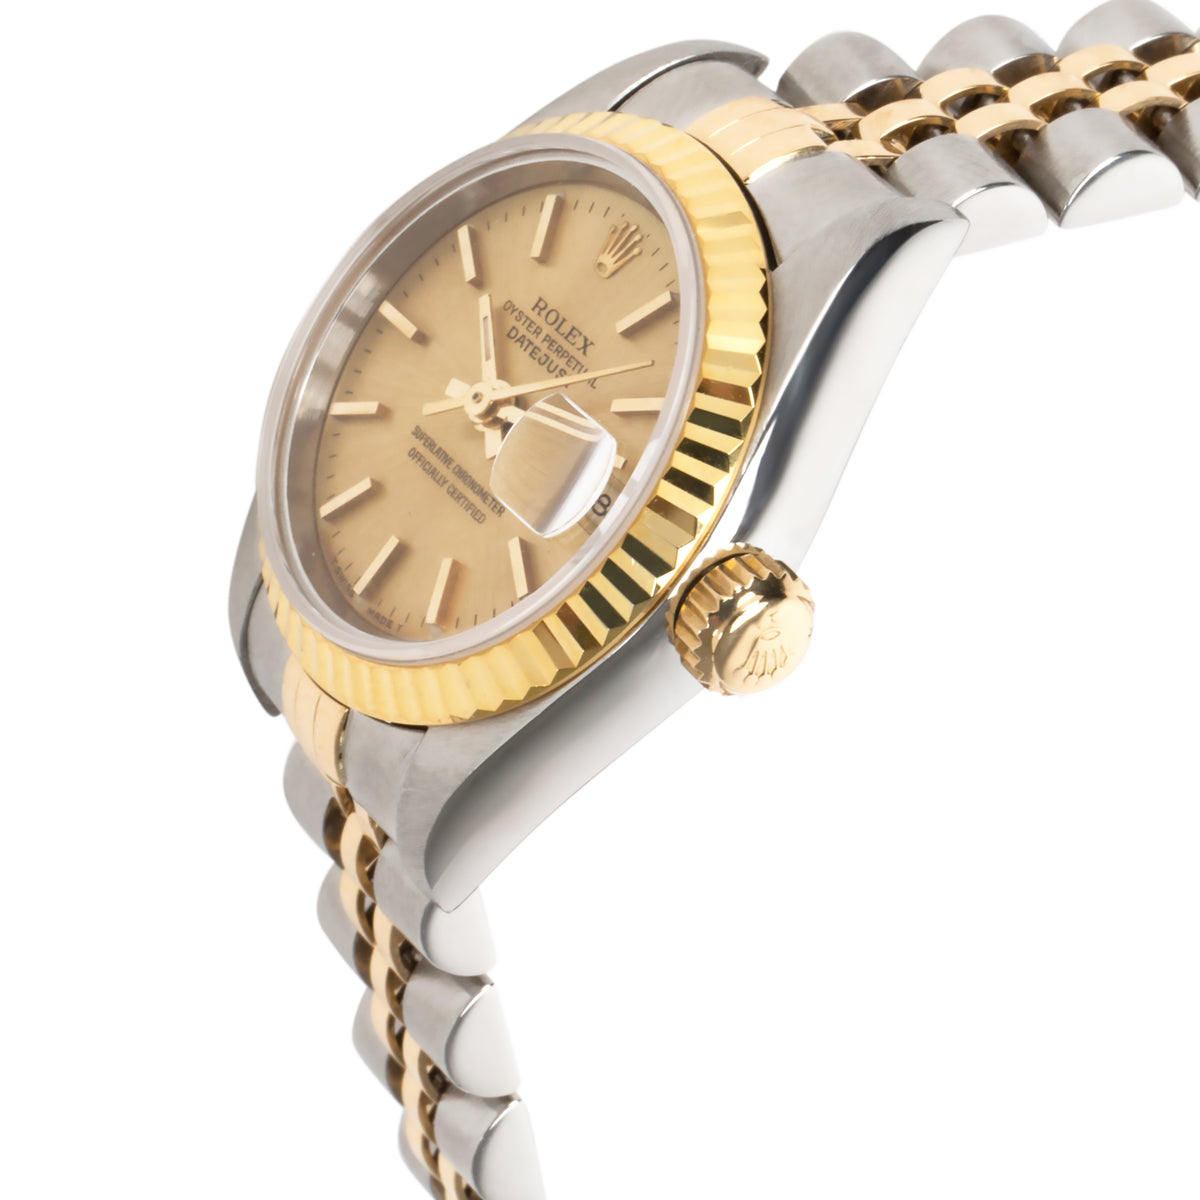 Rolex Datejust 69173 Women's Watch in 18K Yellow Gold/Steel